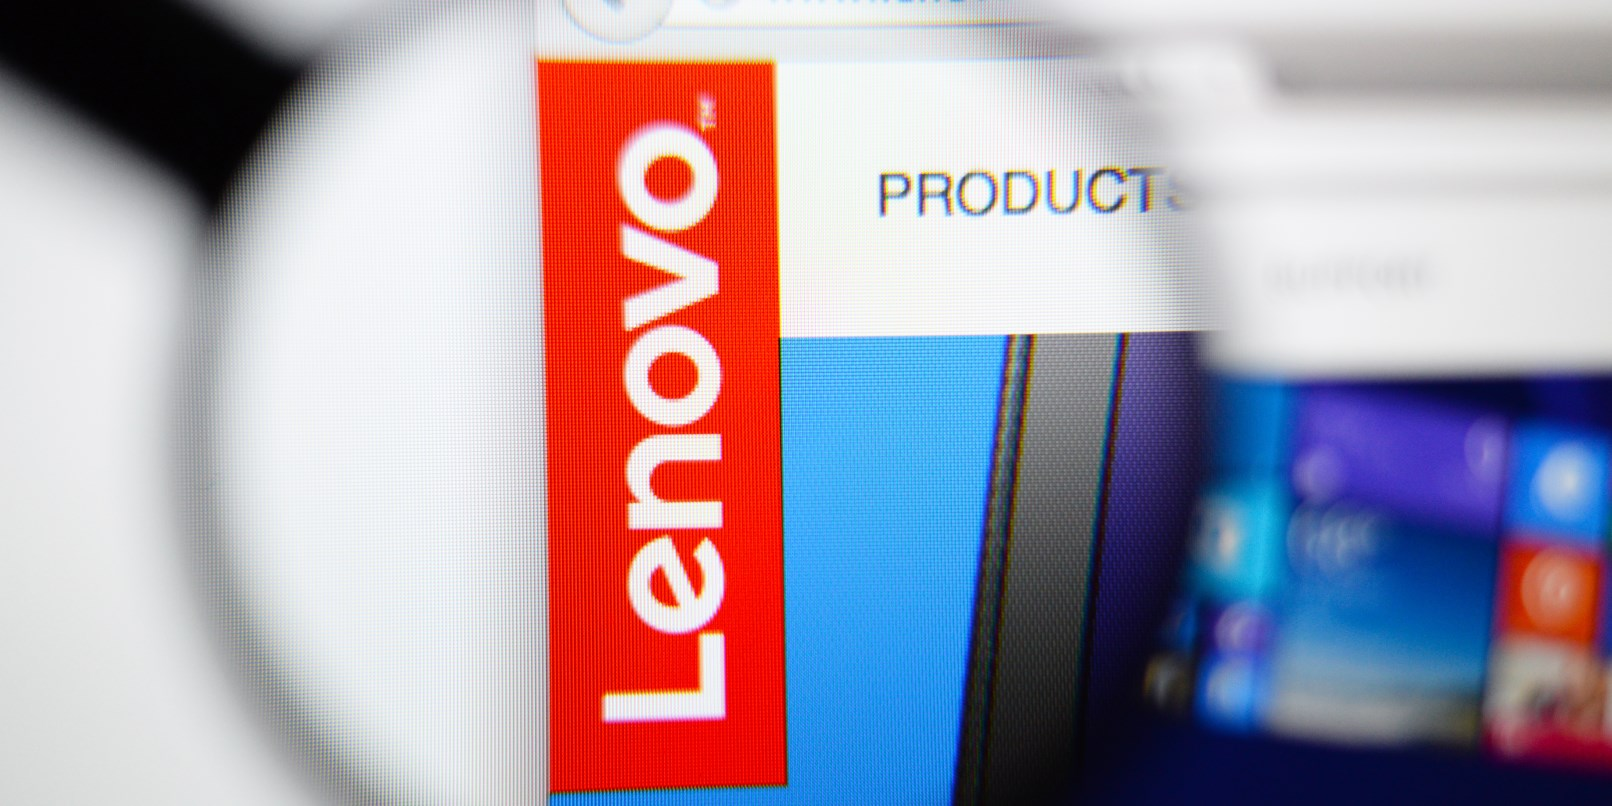 Motorola will now design and build Lenovo phones